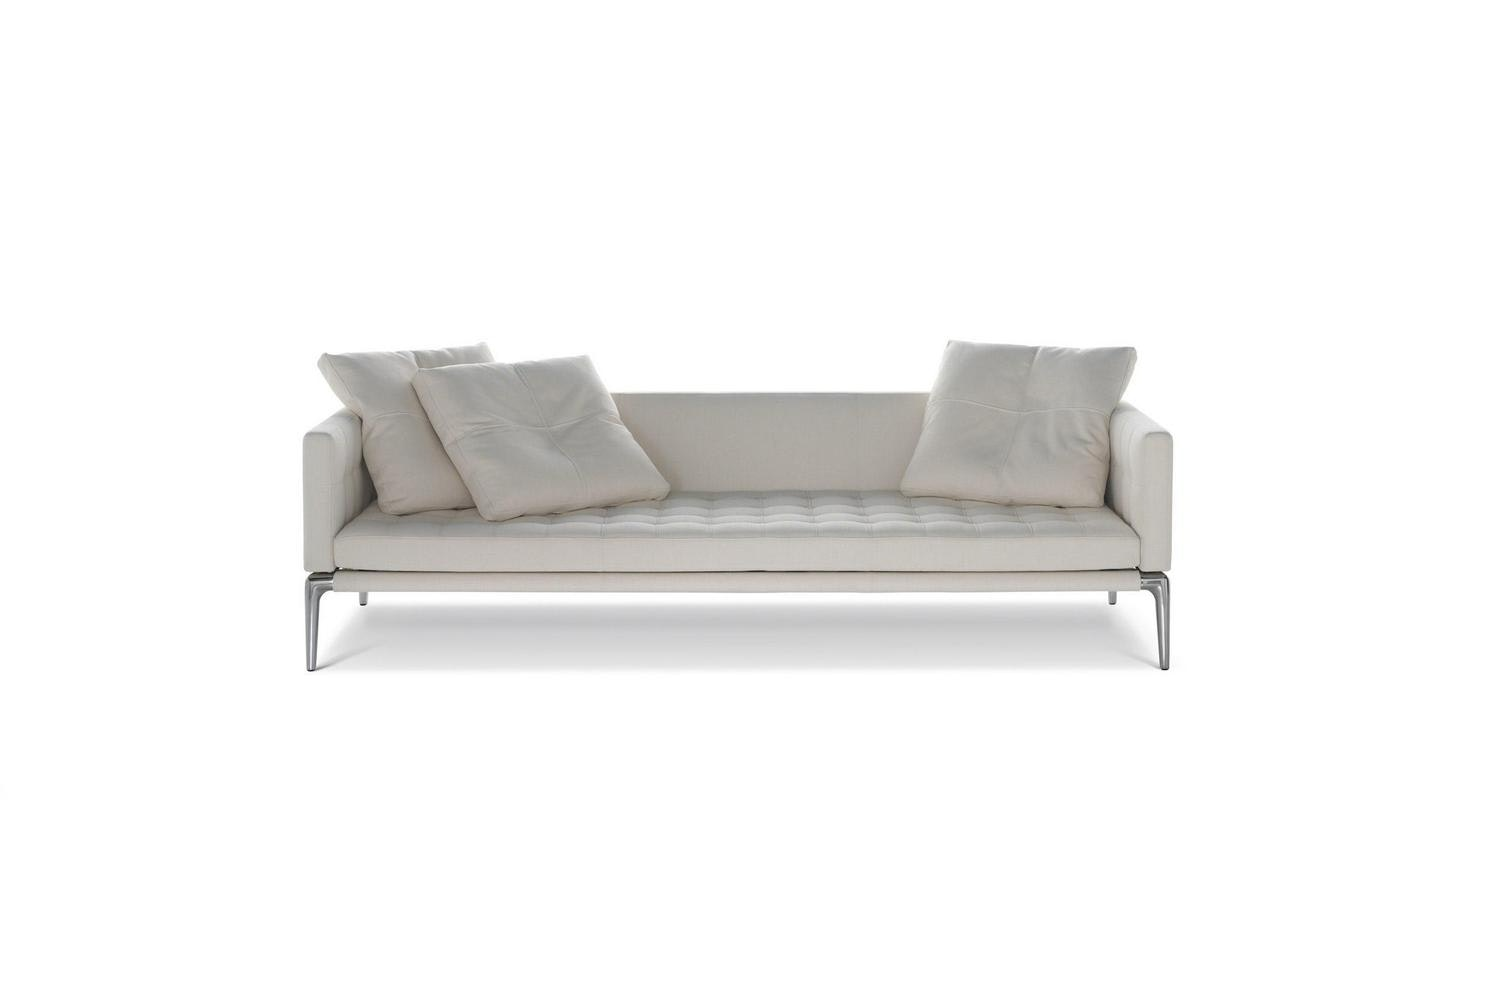 243 Volage Sofa by Philippe Starck for Cassina